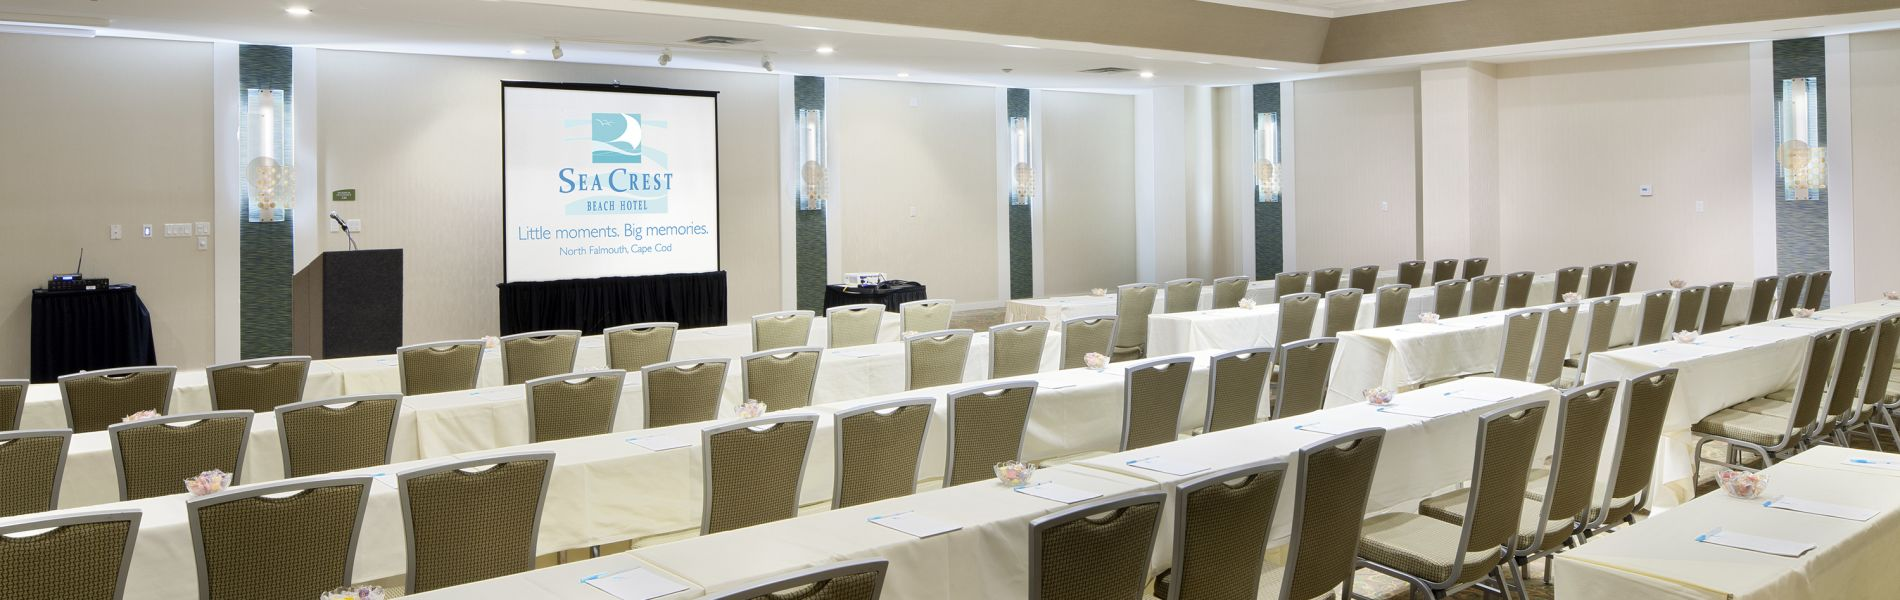 Cape Cod Meeting Rooms at Sea Crest Beach Hotel